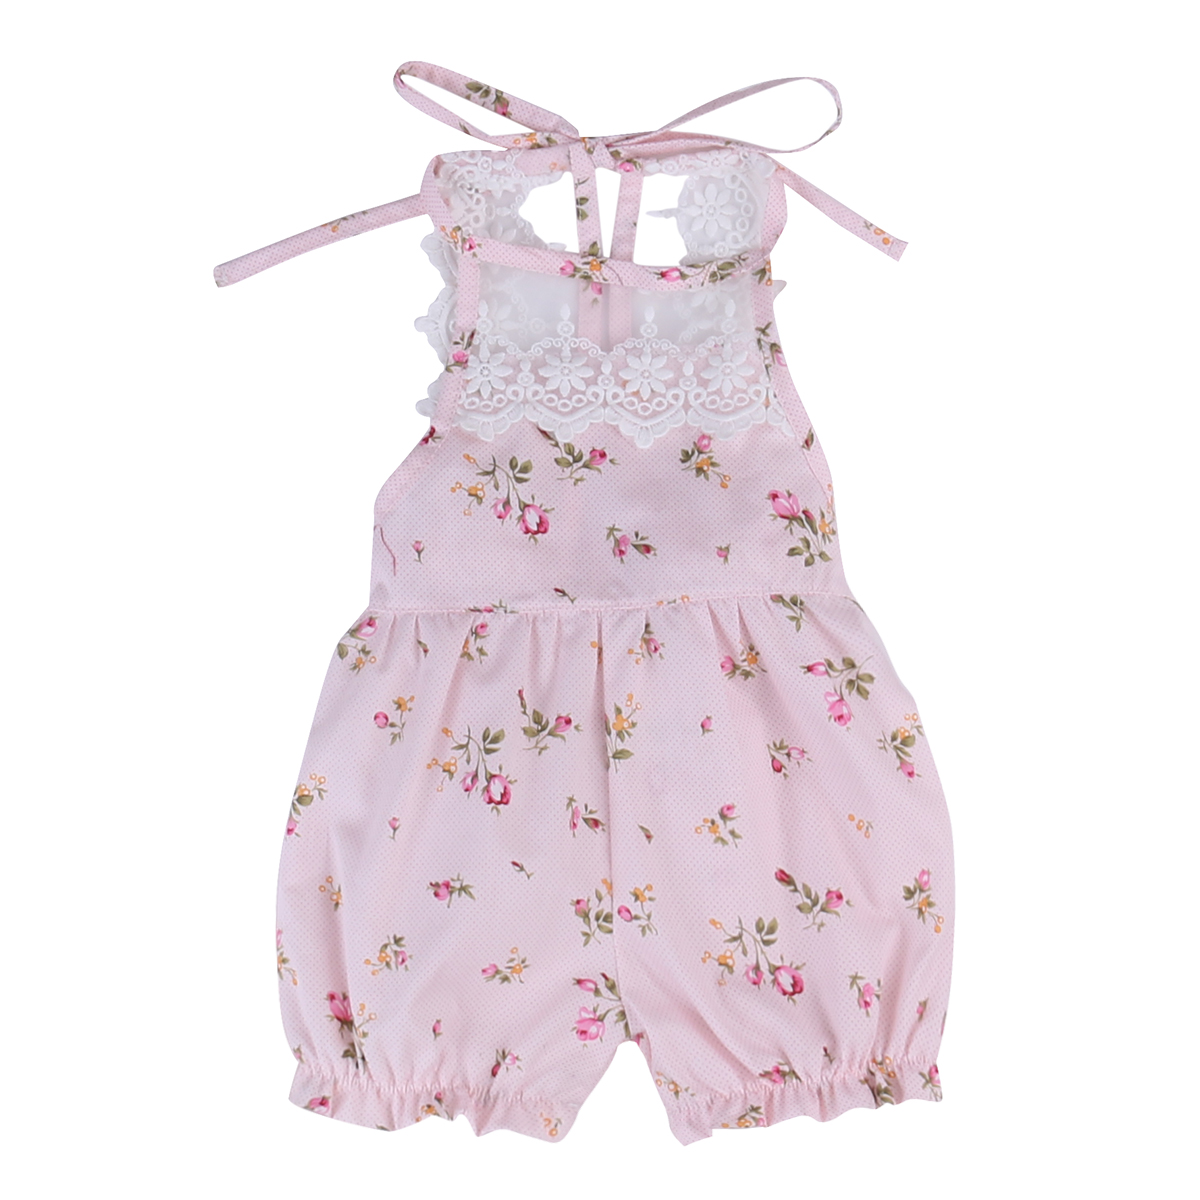 Newborn Baby Girls Lace Floral Romper Jumpsuit Kids Girls Cute Cotton Summer Sunsuit Clothes Outfits pudcoco newborn infant baby girls clothes short sleeve floral romper headband summer cute cotton one piece clothes